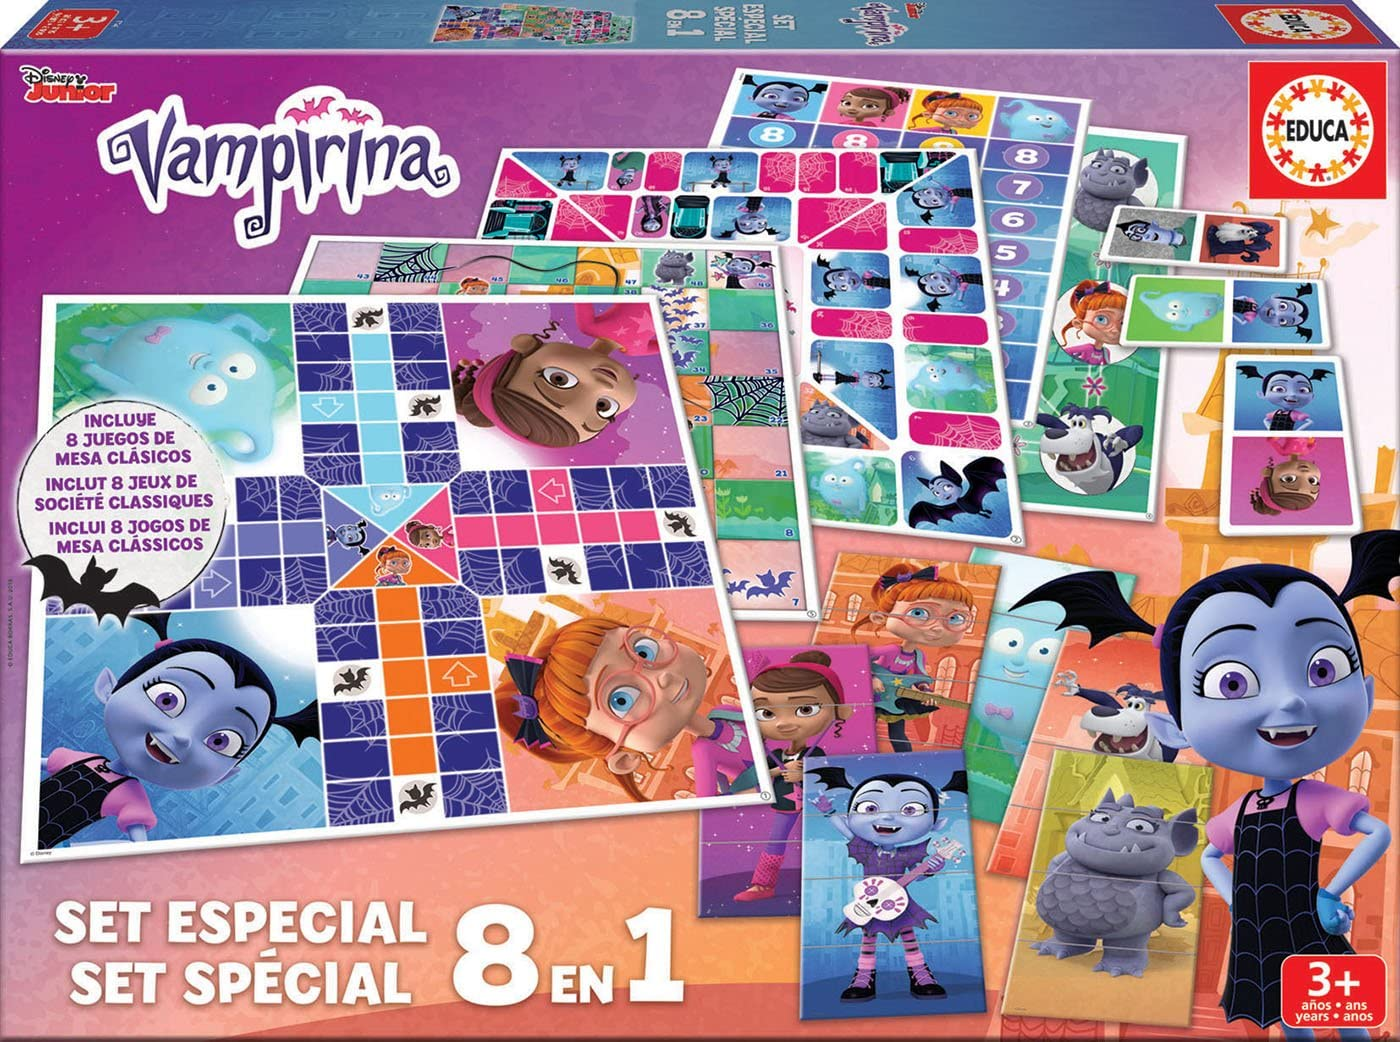 Educa Borrás- Set 8 En 1 Vampirina, Multicolor (17943): Amazon.es ...